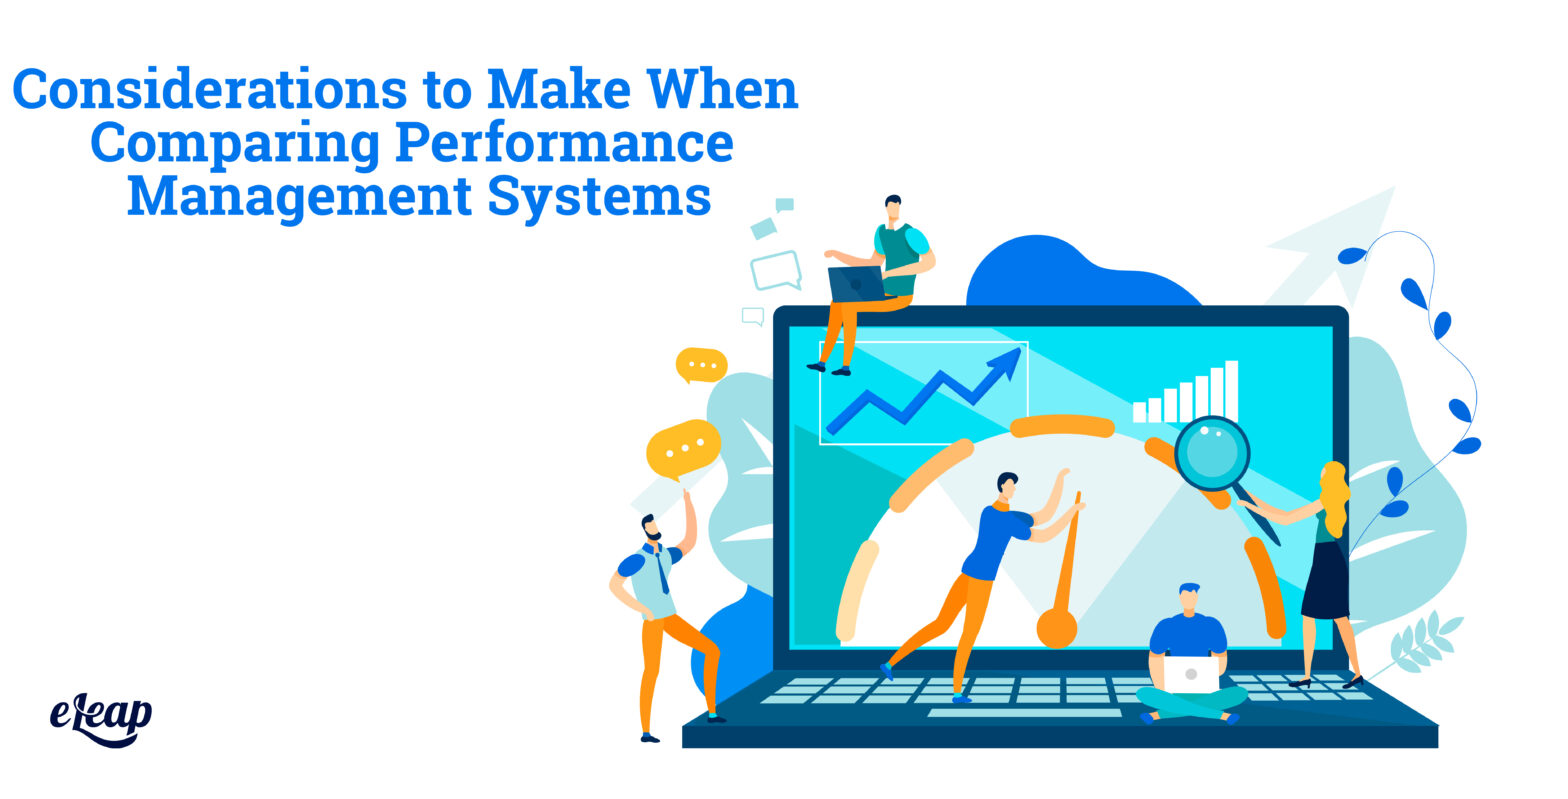 Considerations to Make When Comparing Performance Management Systems